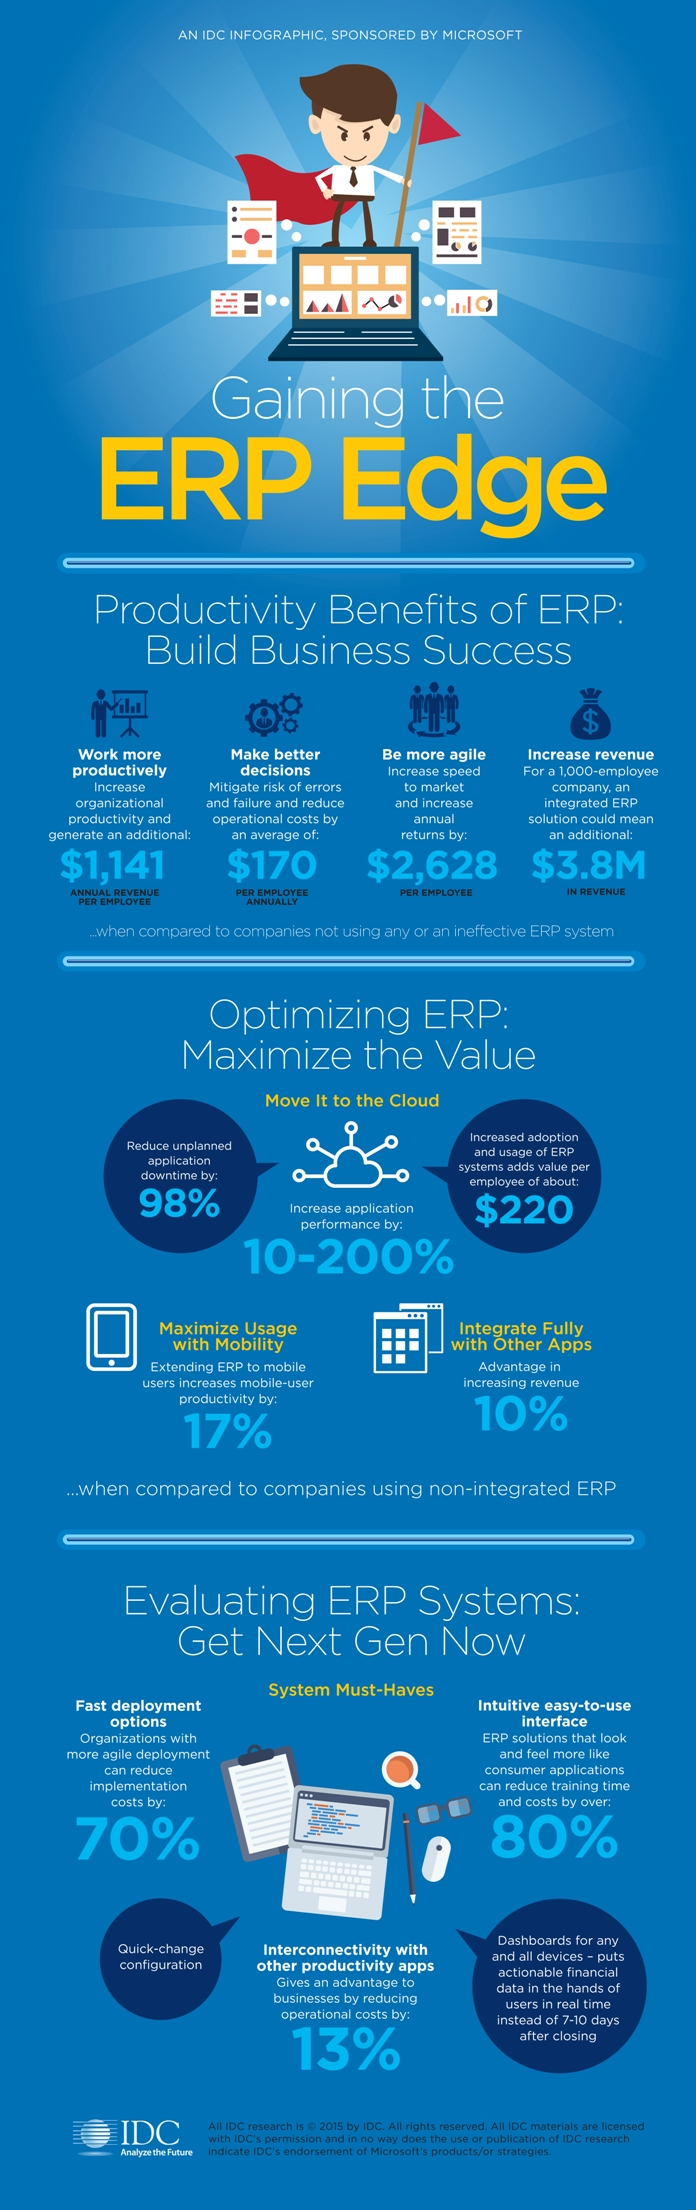 Infographic: Gaining the ERP Edge - ERP Software Blog